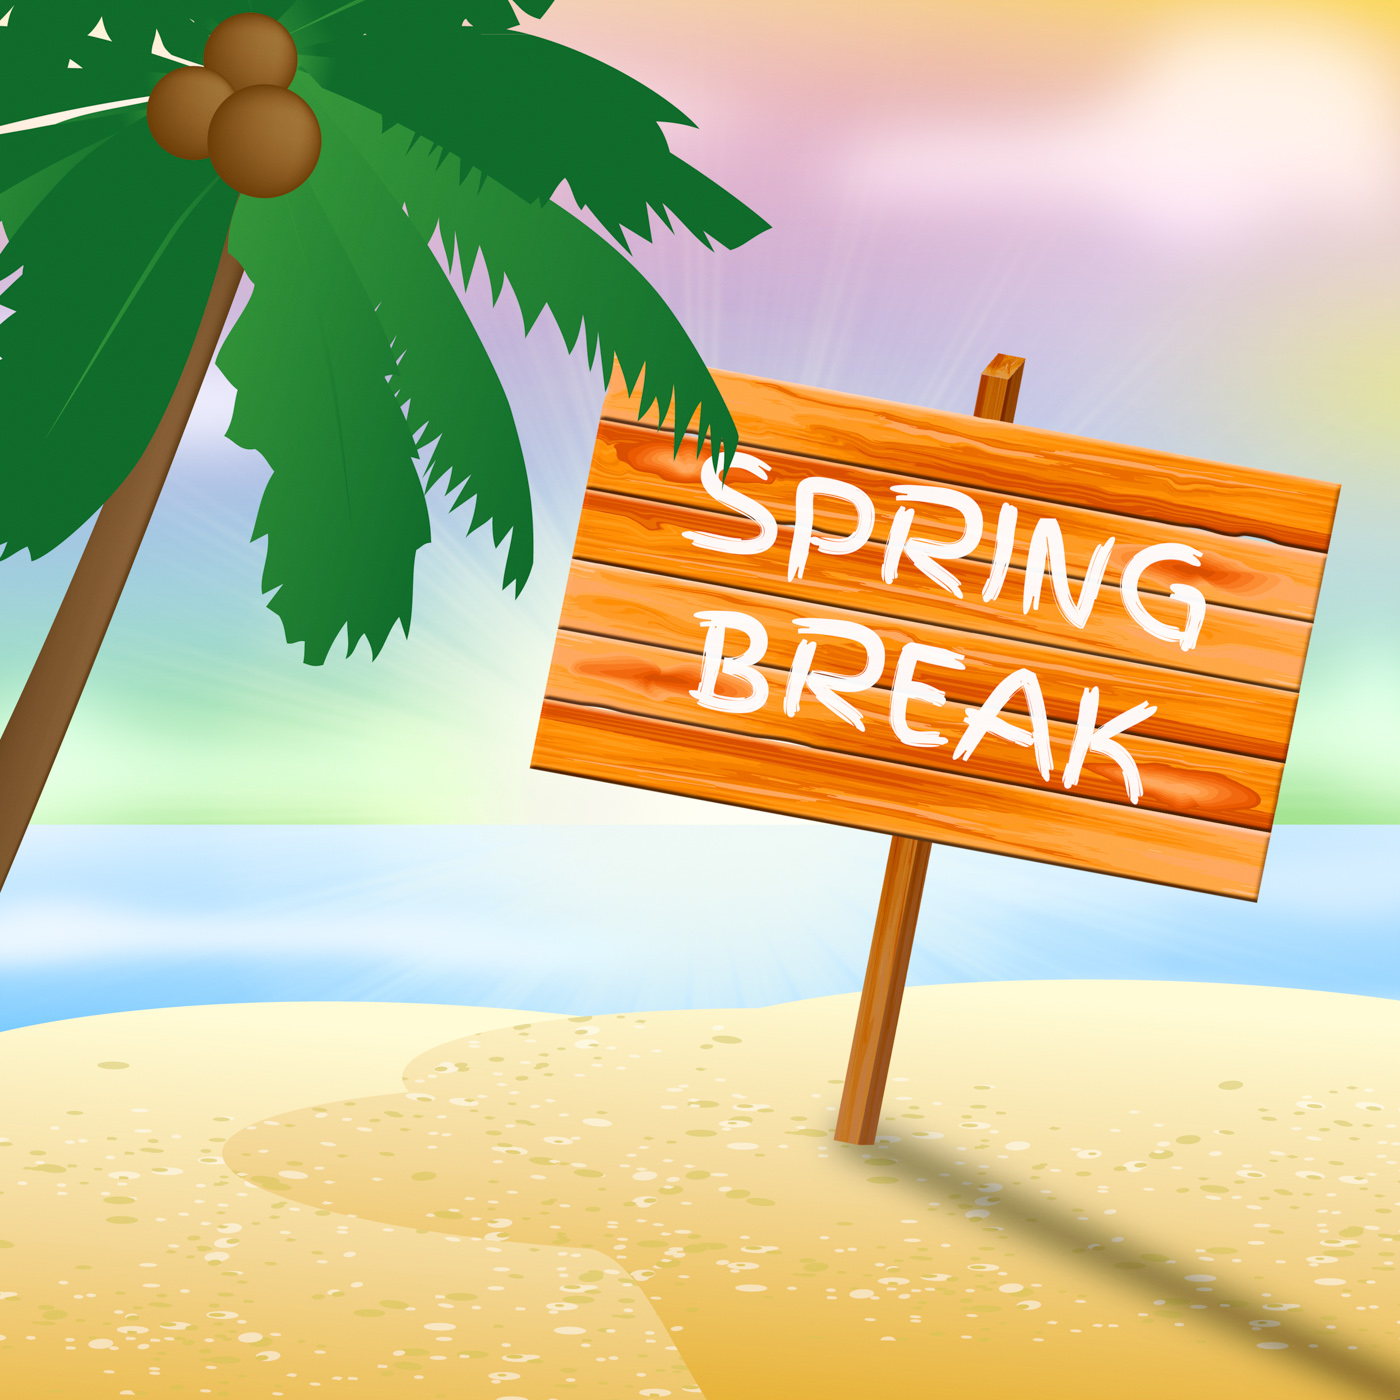 Spring break sign means go on leave and beach photo